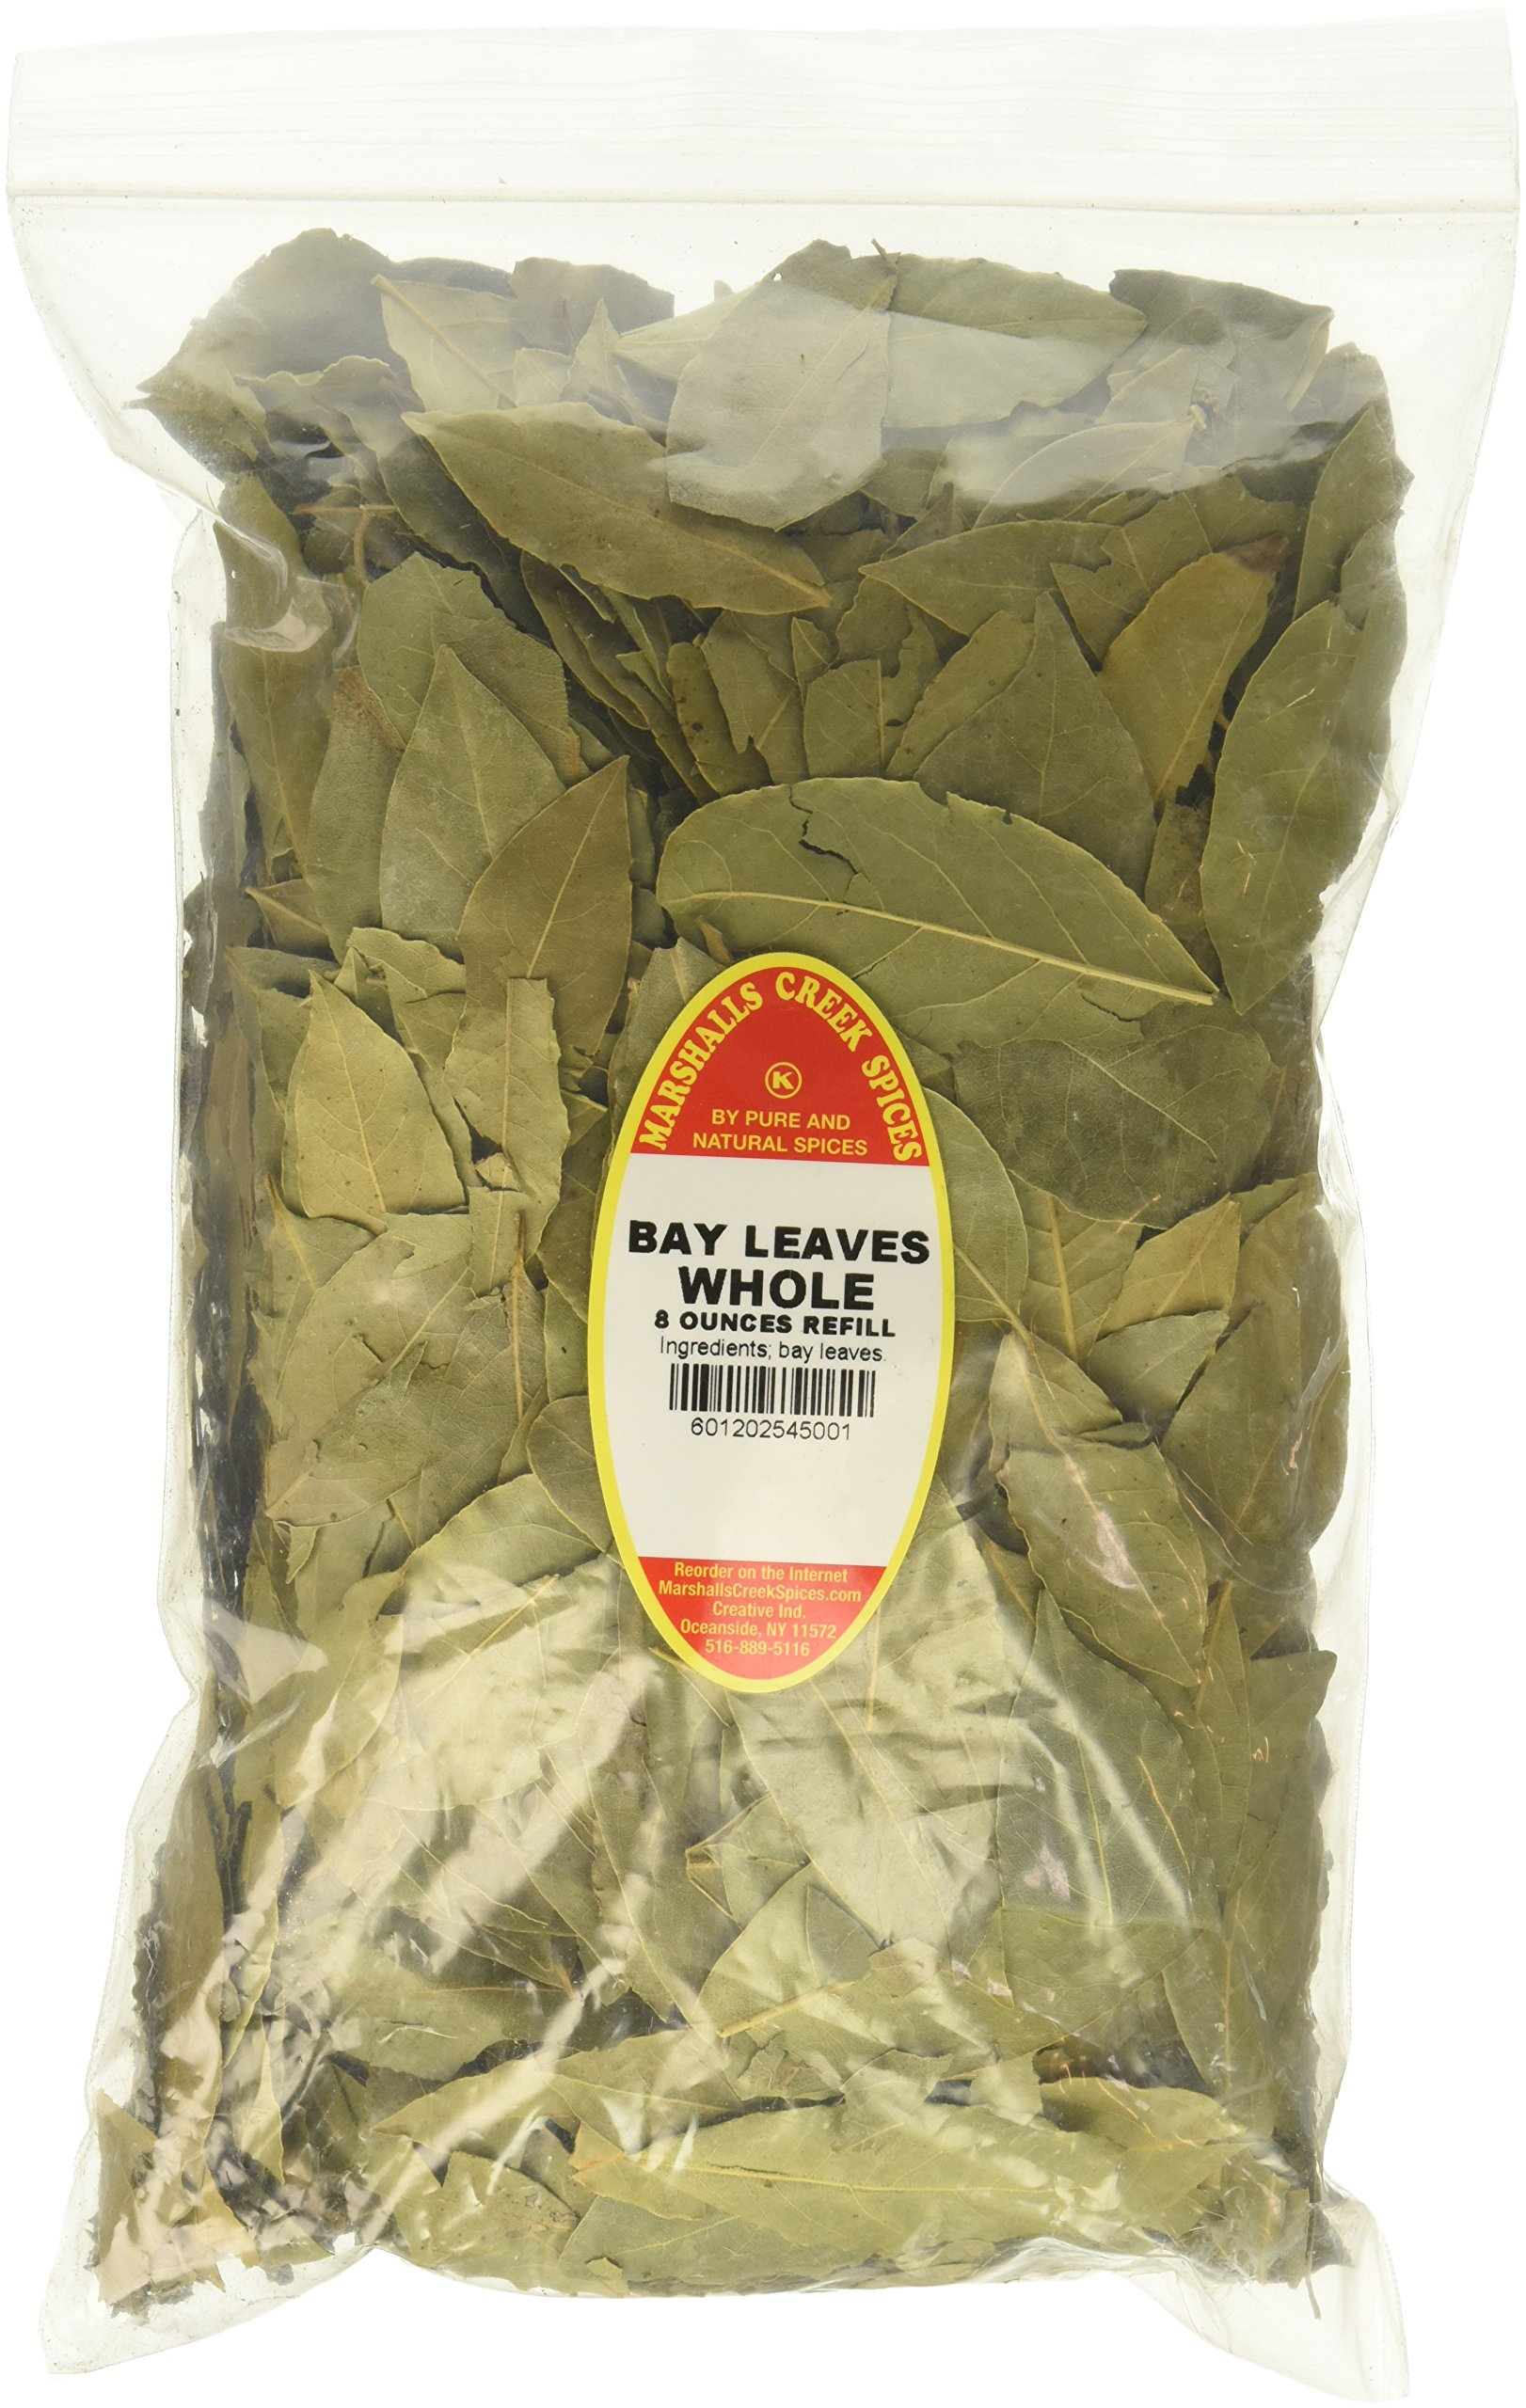 Marshalls Creek Spices Family Size Kosher Whole Laurel Bay Leaves Refill, 8 Ounce